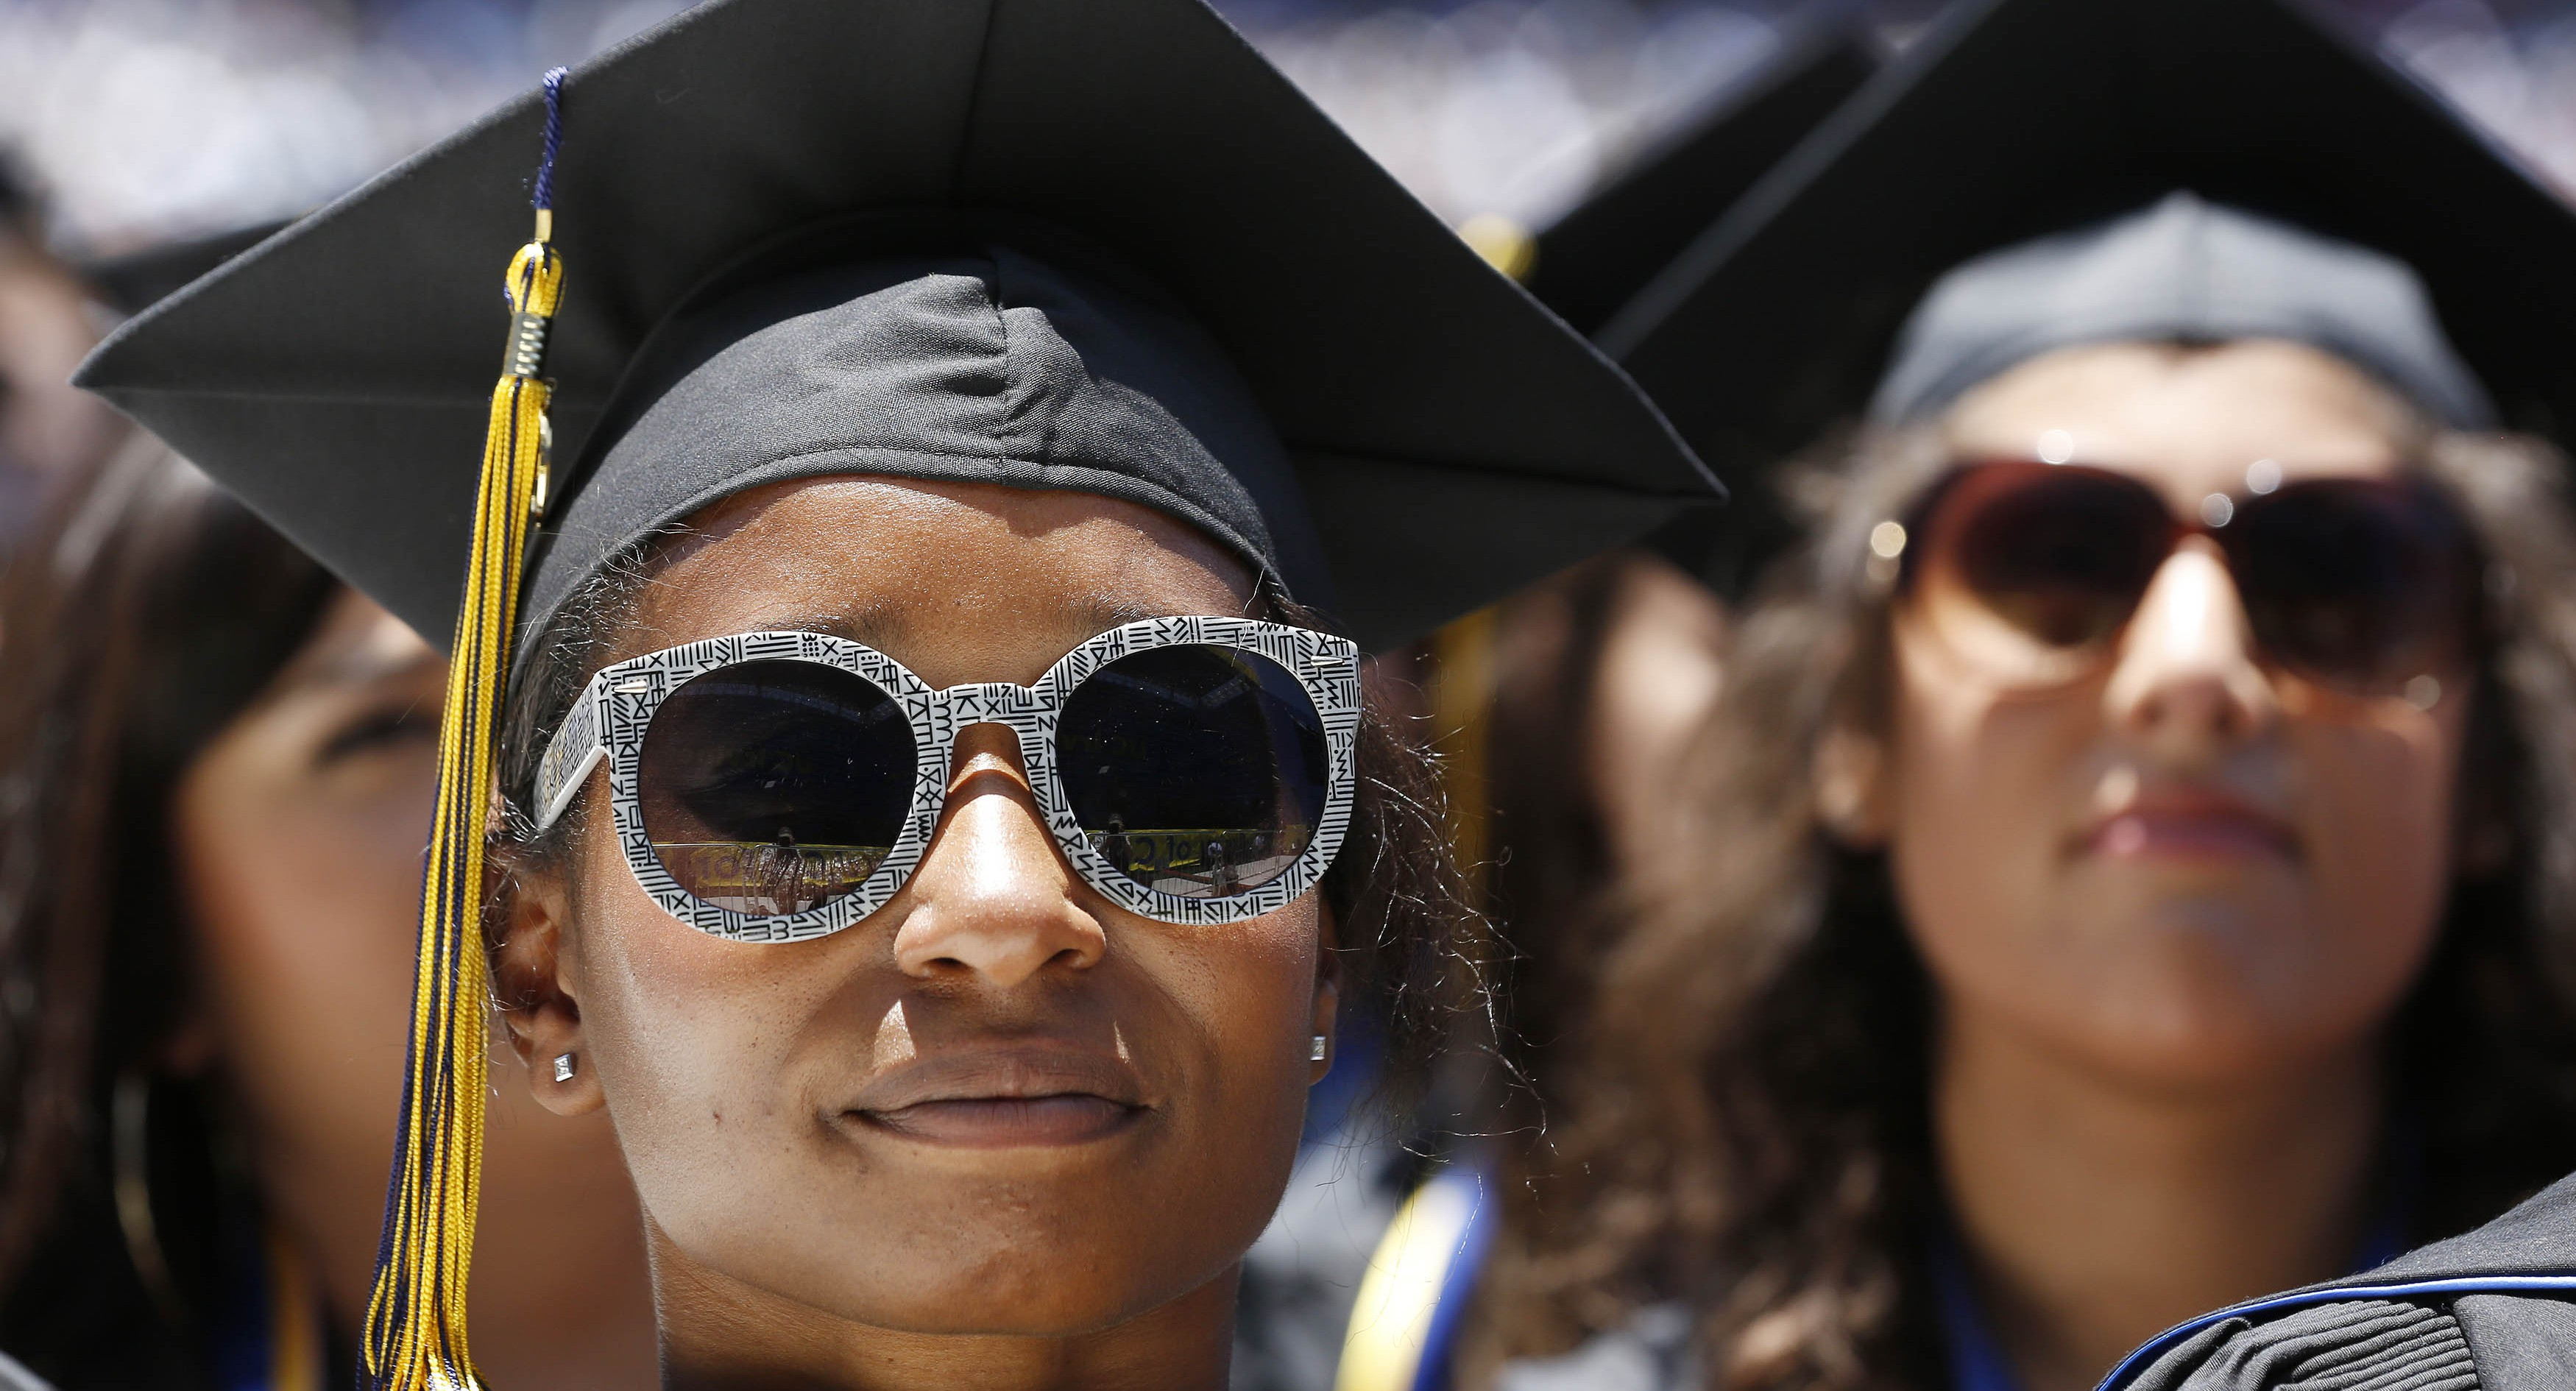 Students listen as U.S. President Barack Obama talks during the commencement ceremony for the University of California, Irvine at Angels Stadium in Anaheim, California June 14, 2014. REUTERS/Larry Downing